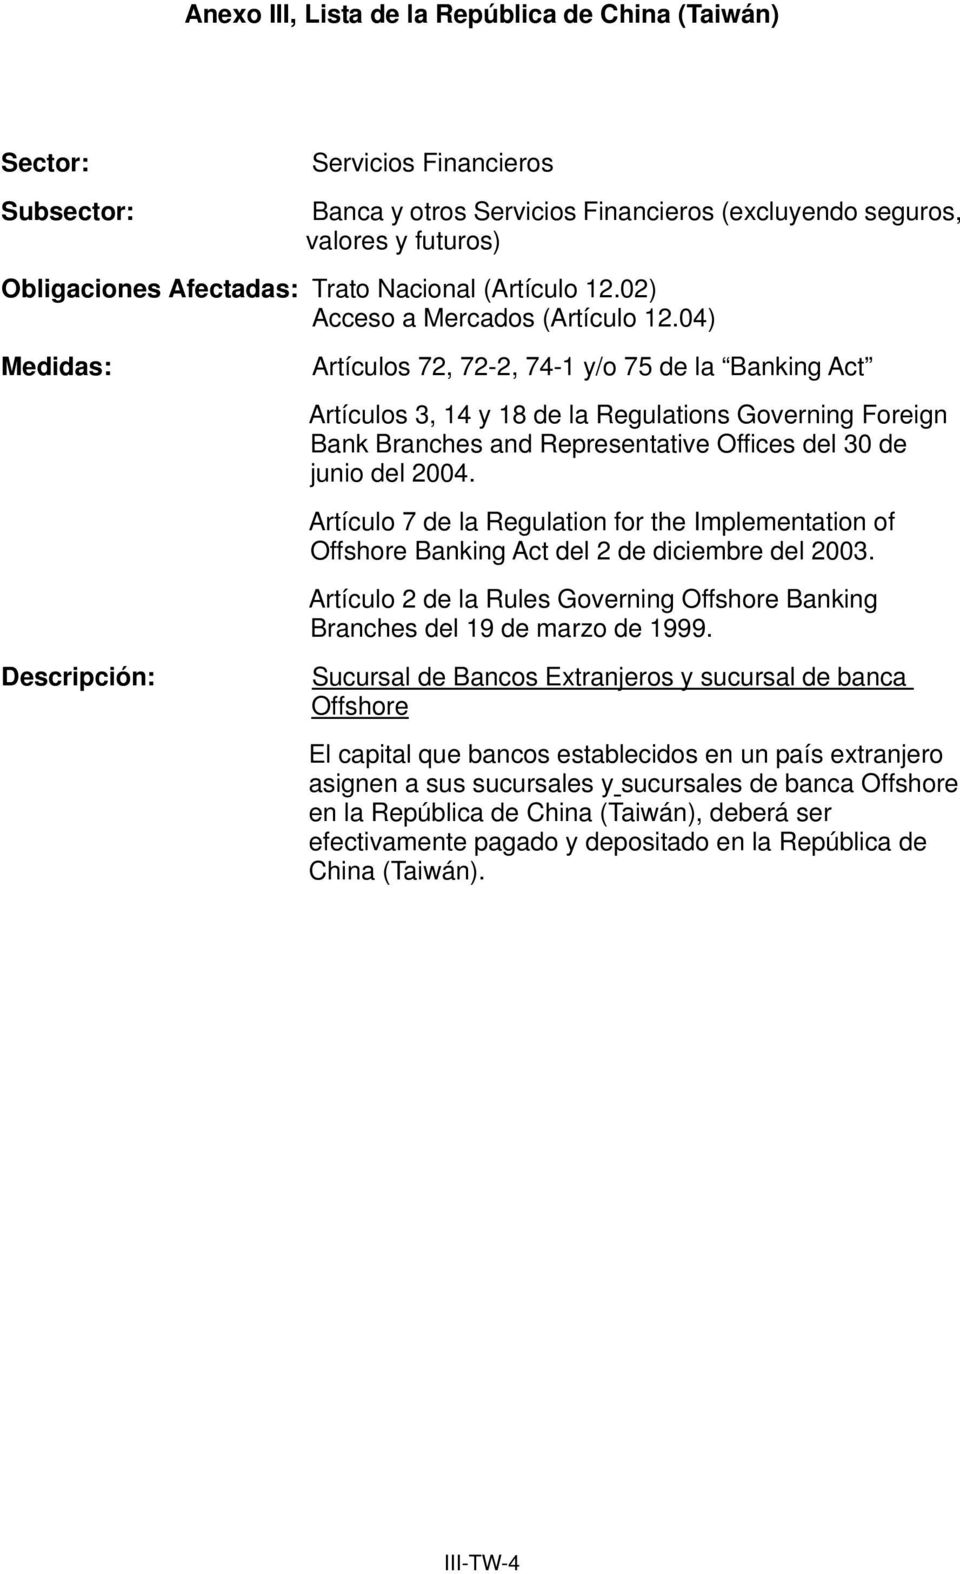 Artículo 7 de la Regulation for the Implementation of Offshore Banking Act del 2 de diciembre del 2003. Artículo 2 de la Rules Governing Offshore Banking Branches del 19 de marzo de 1999.